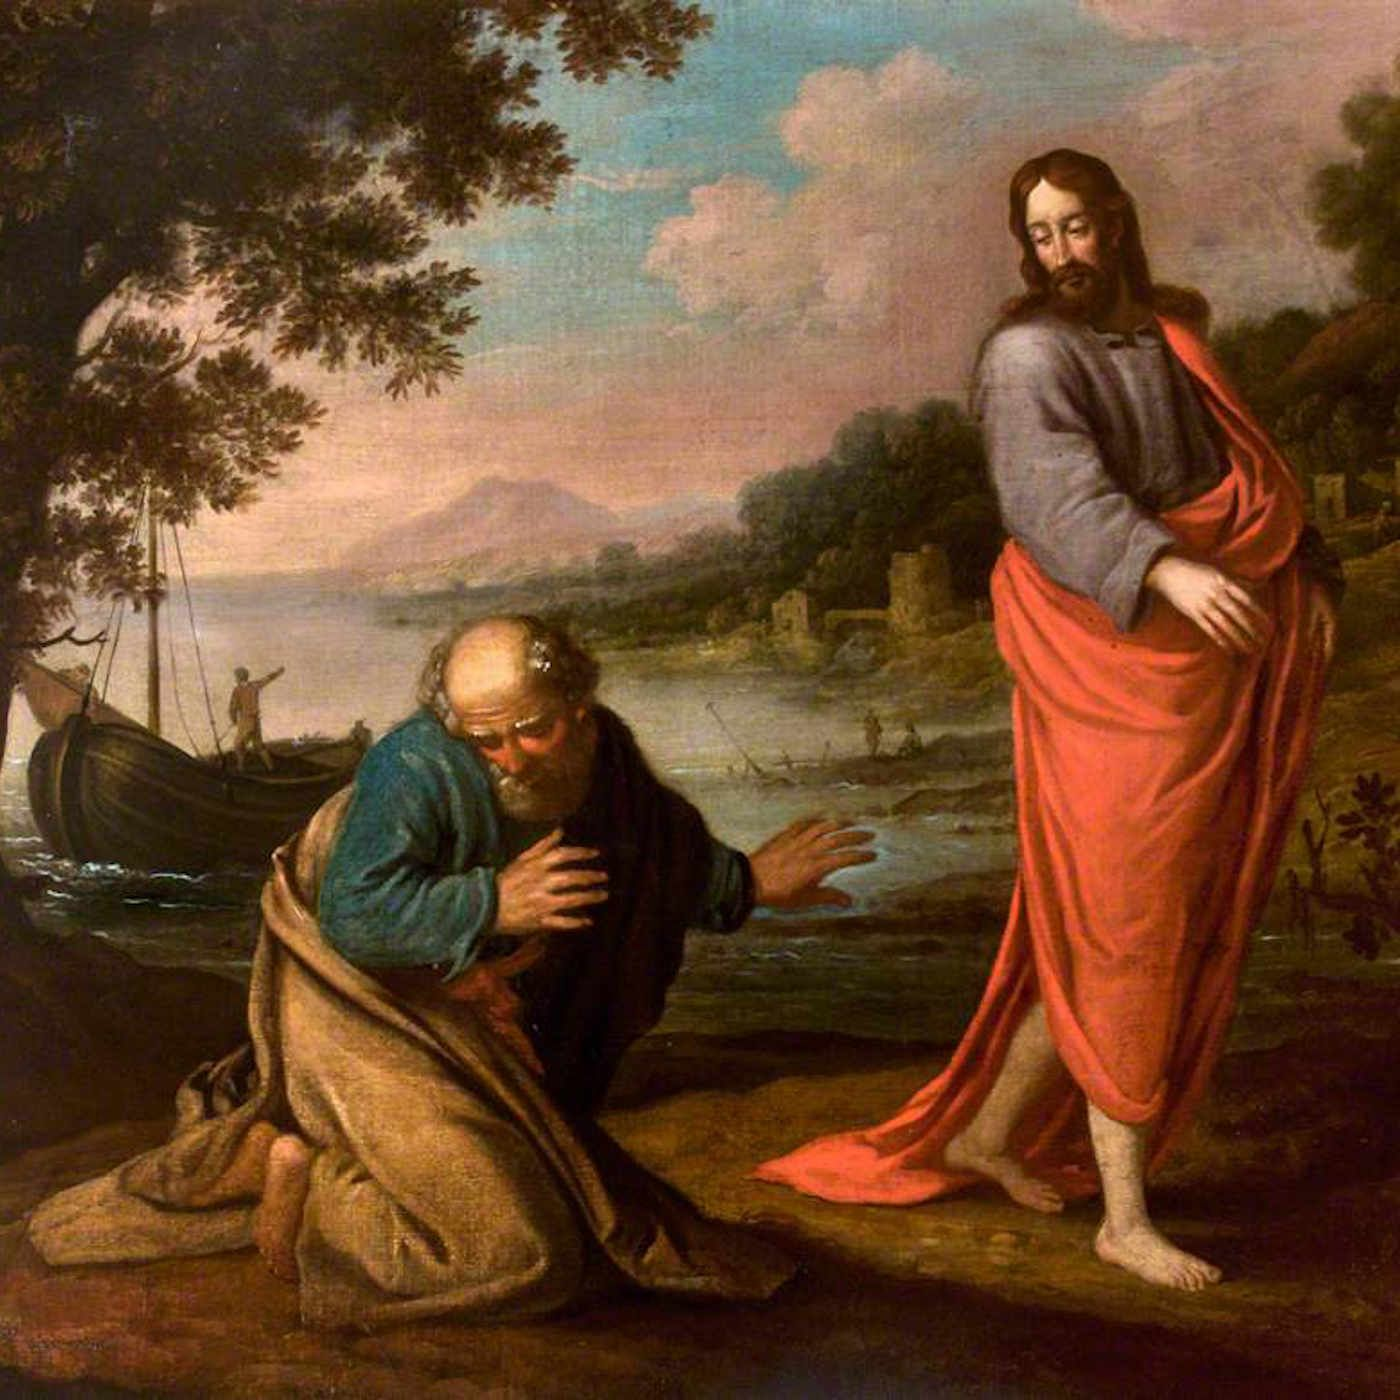 Twenty-Fourth Sunday in Ordinary Time, Year B - Suffering from the Divine Perspective